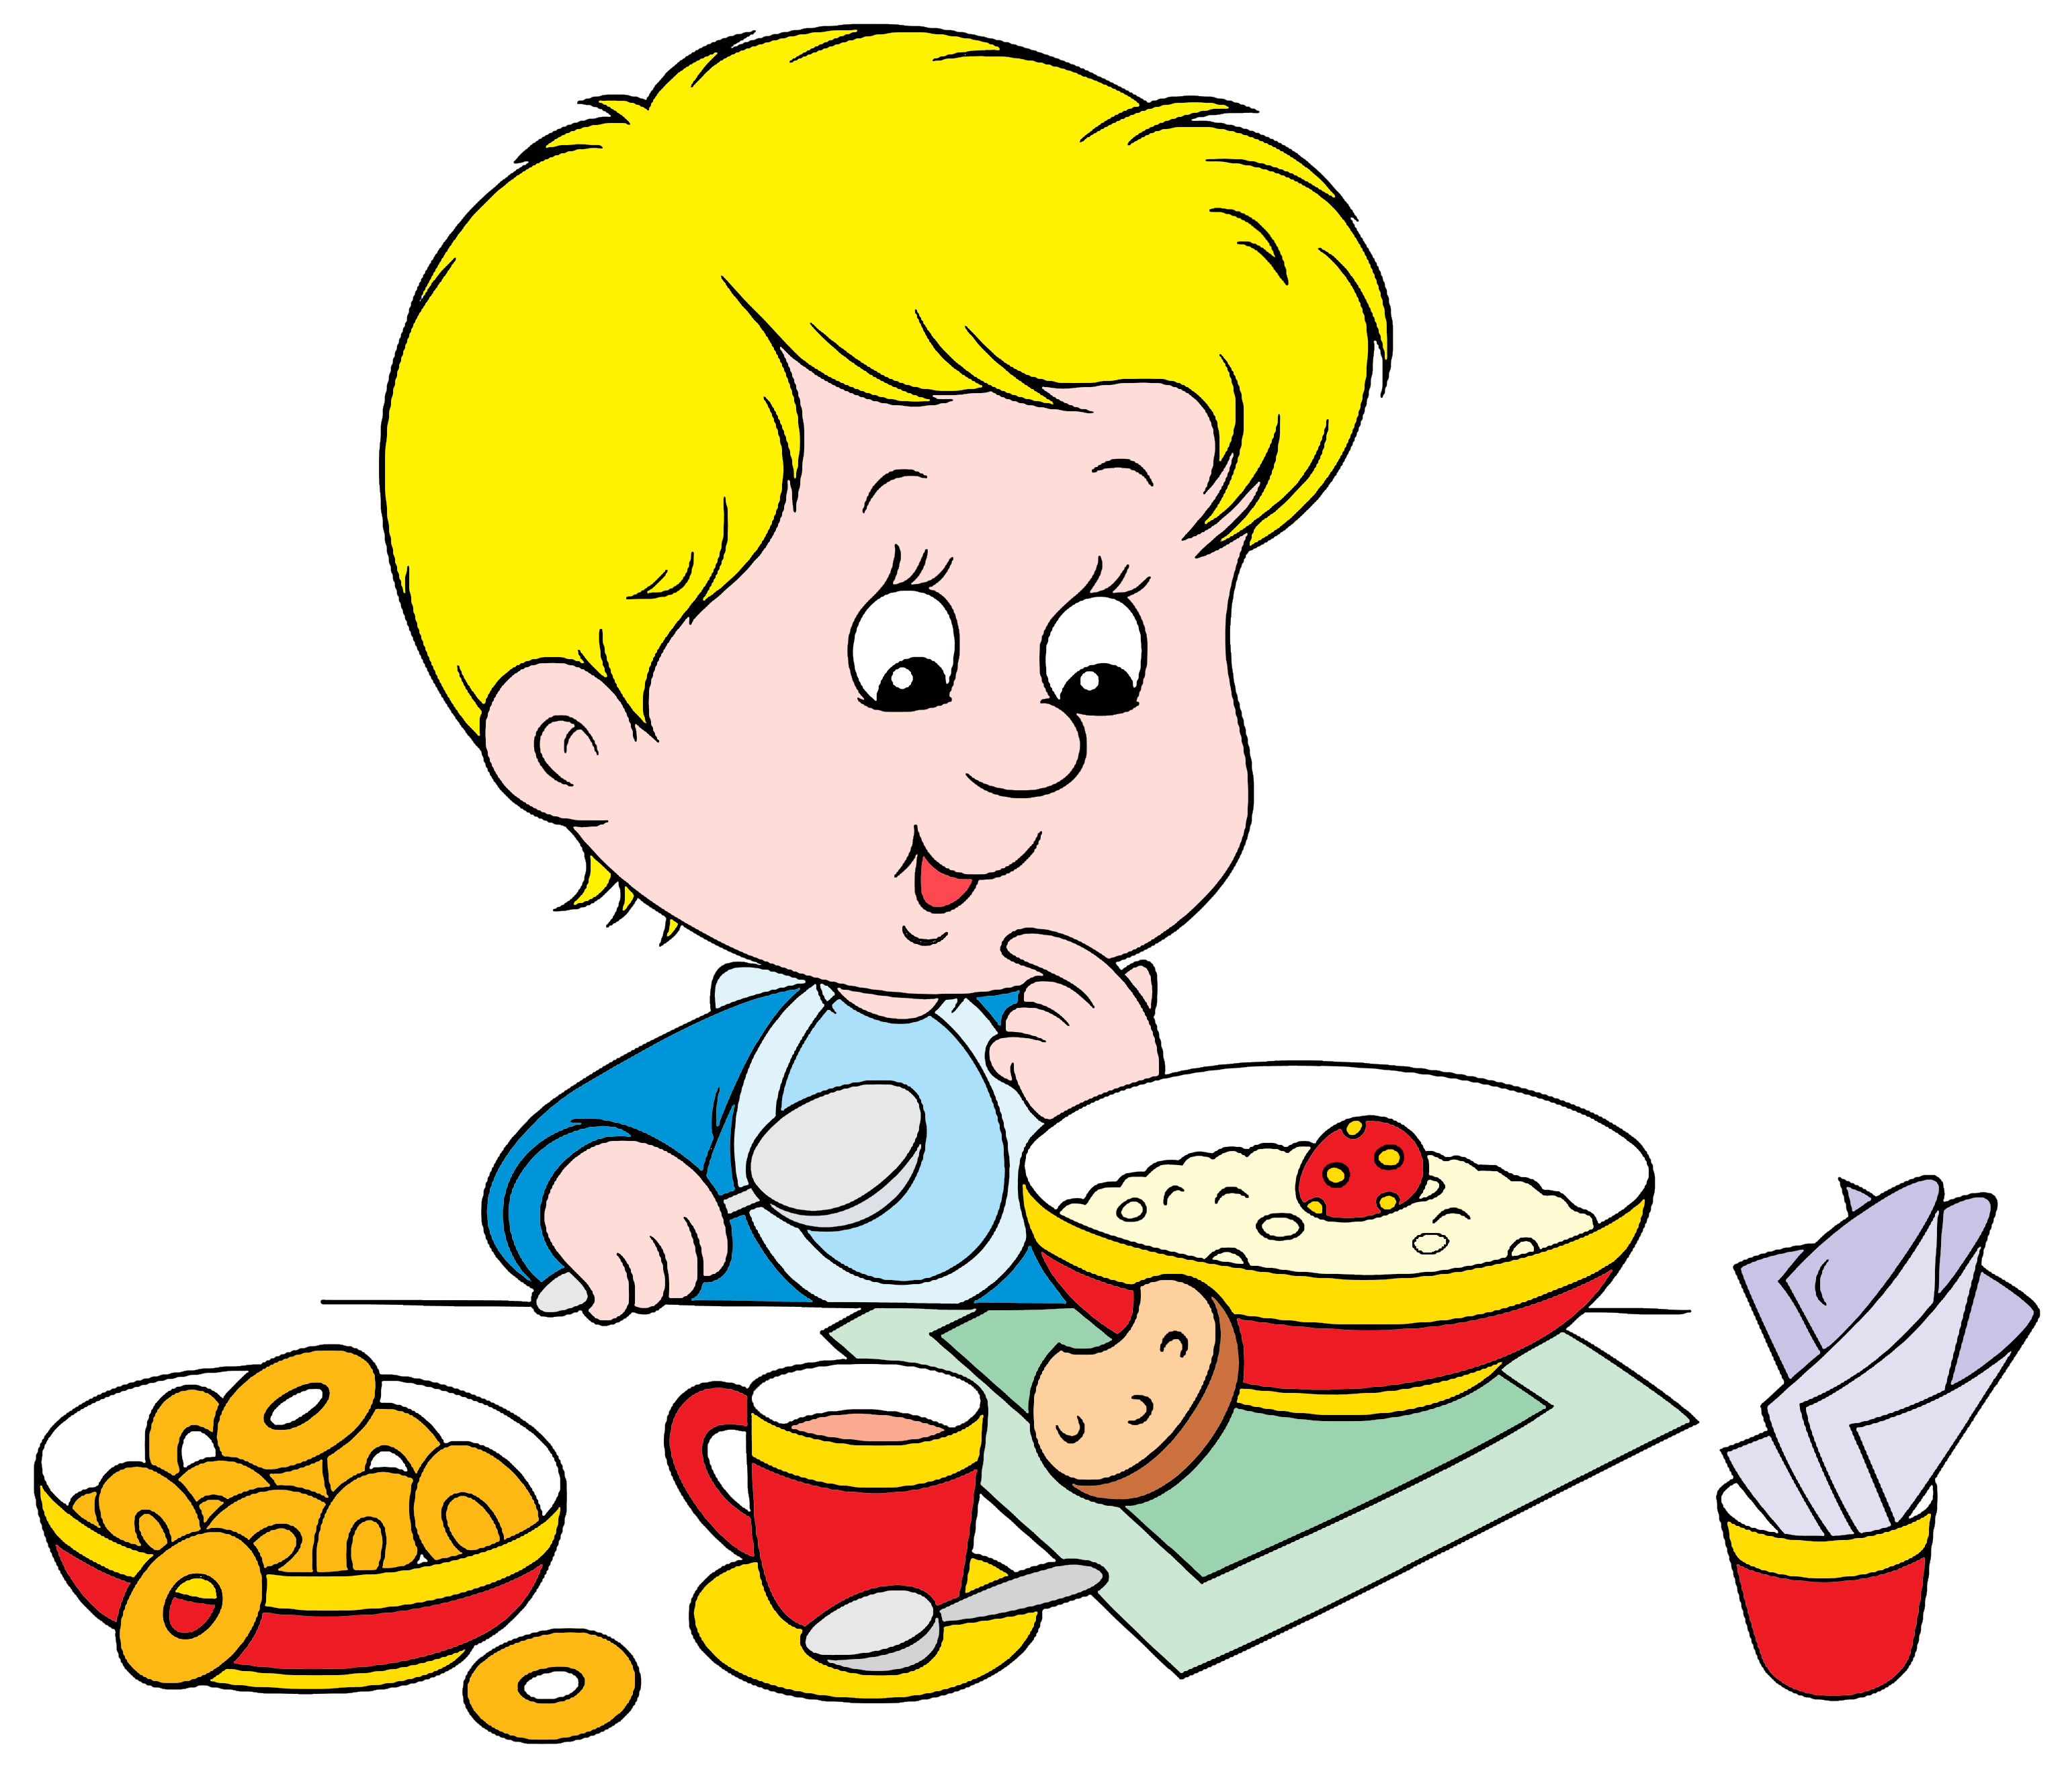 boy eating breakfast clipart - Google Търсене | Kids ...